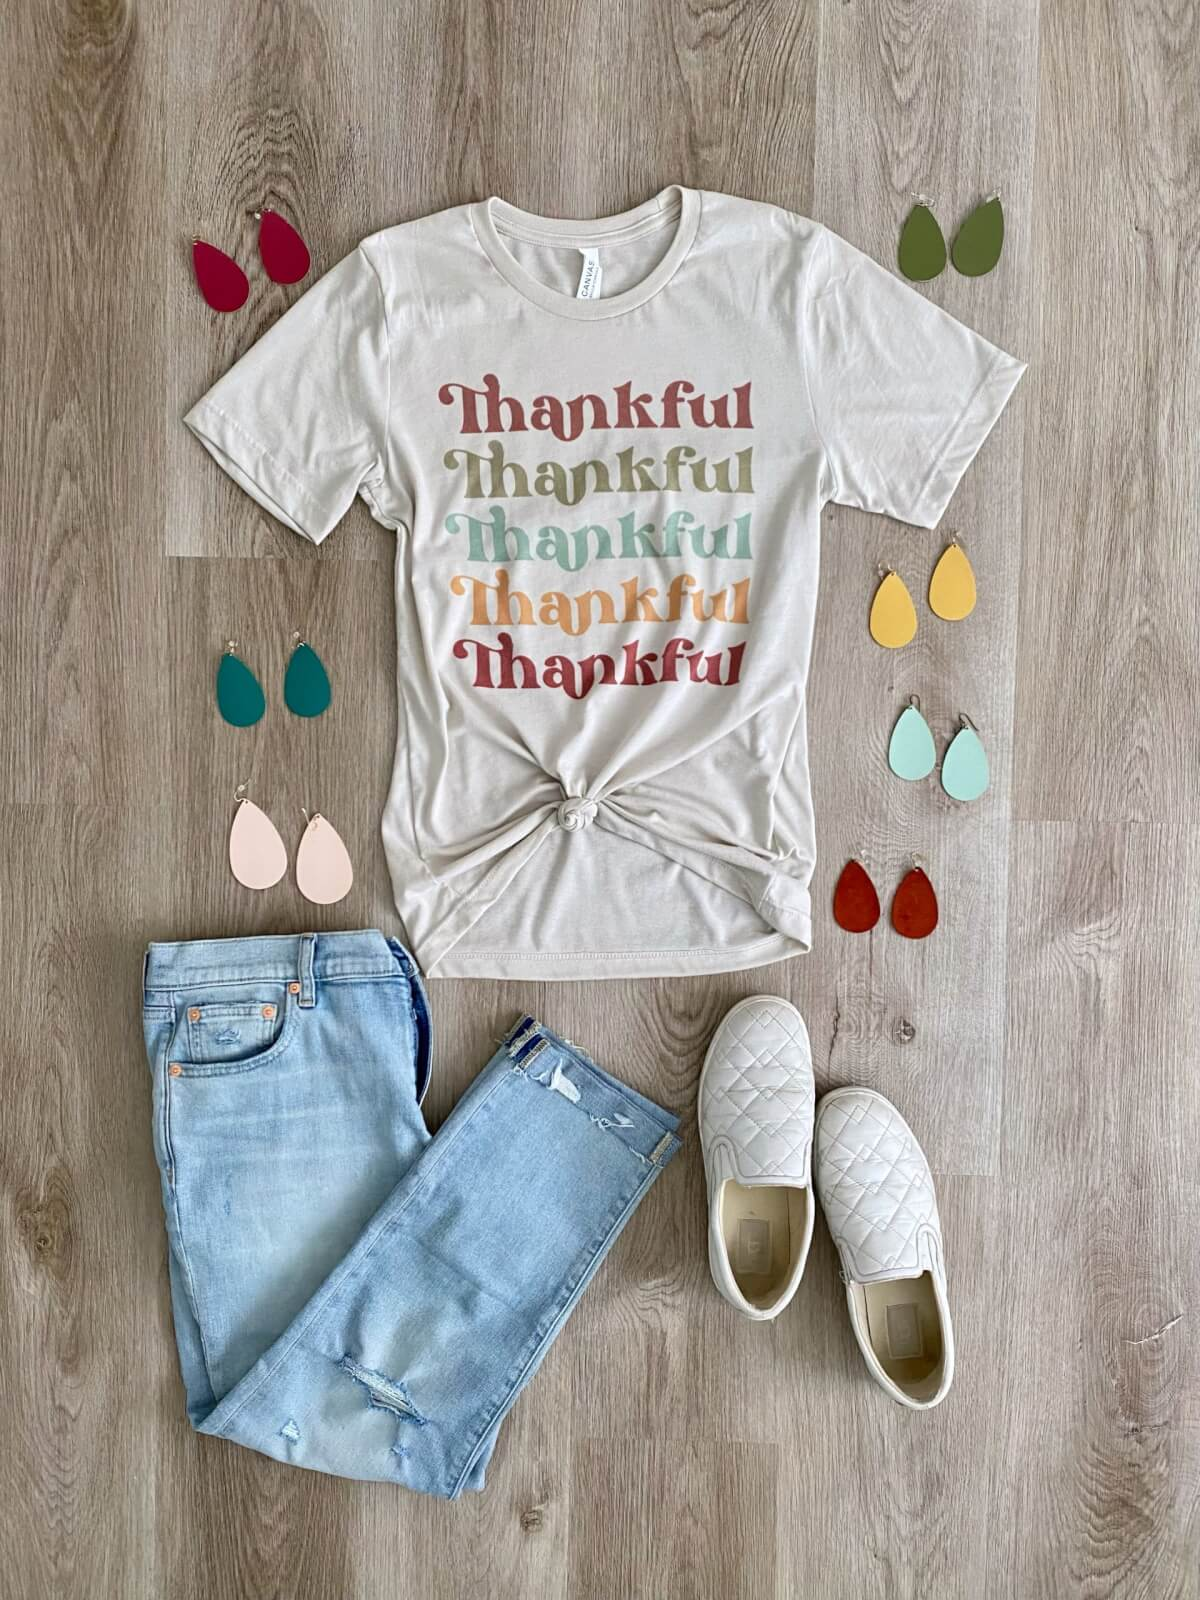 Casual Outfit Early Fall: thankful t-shirt + distressed jeans + Nickel & Suede earrings + white slip-on sneakers